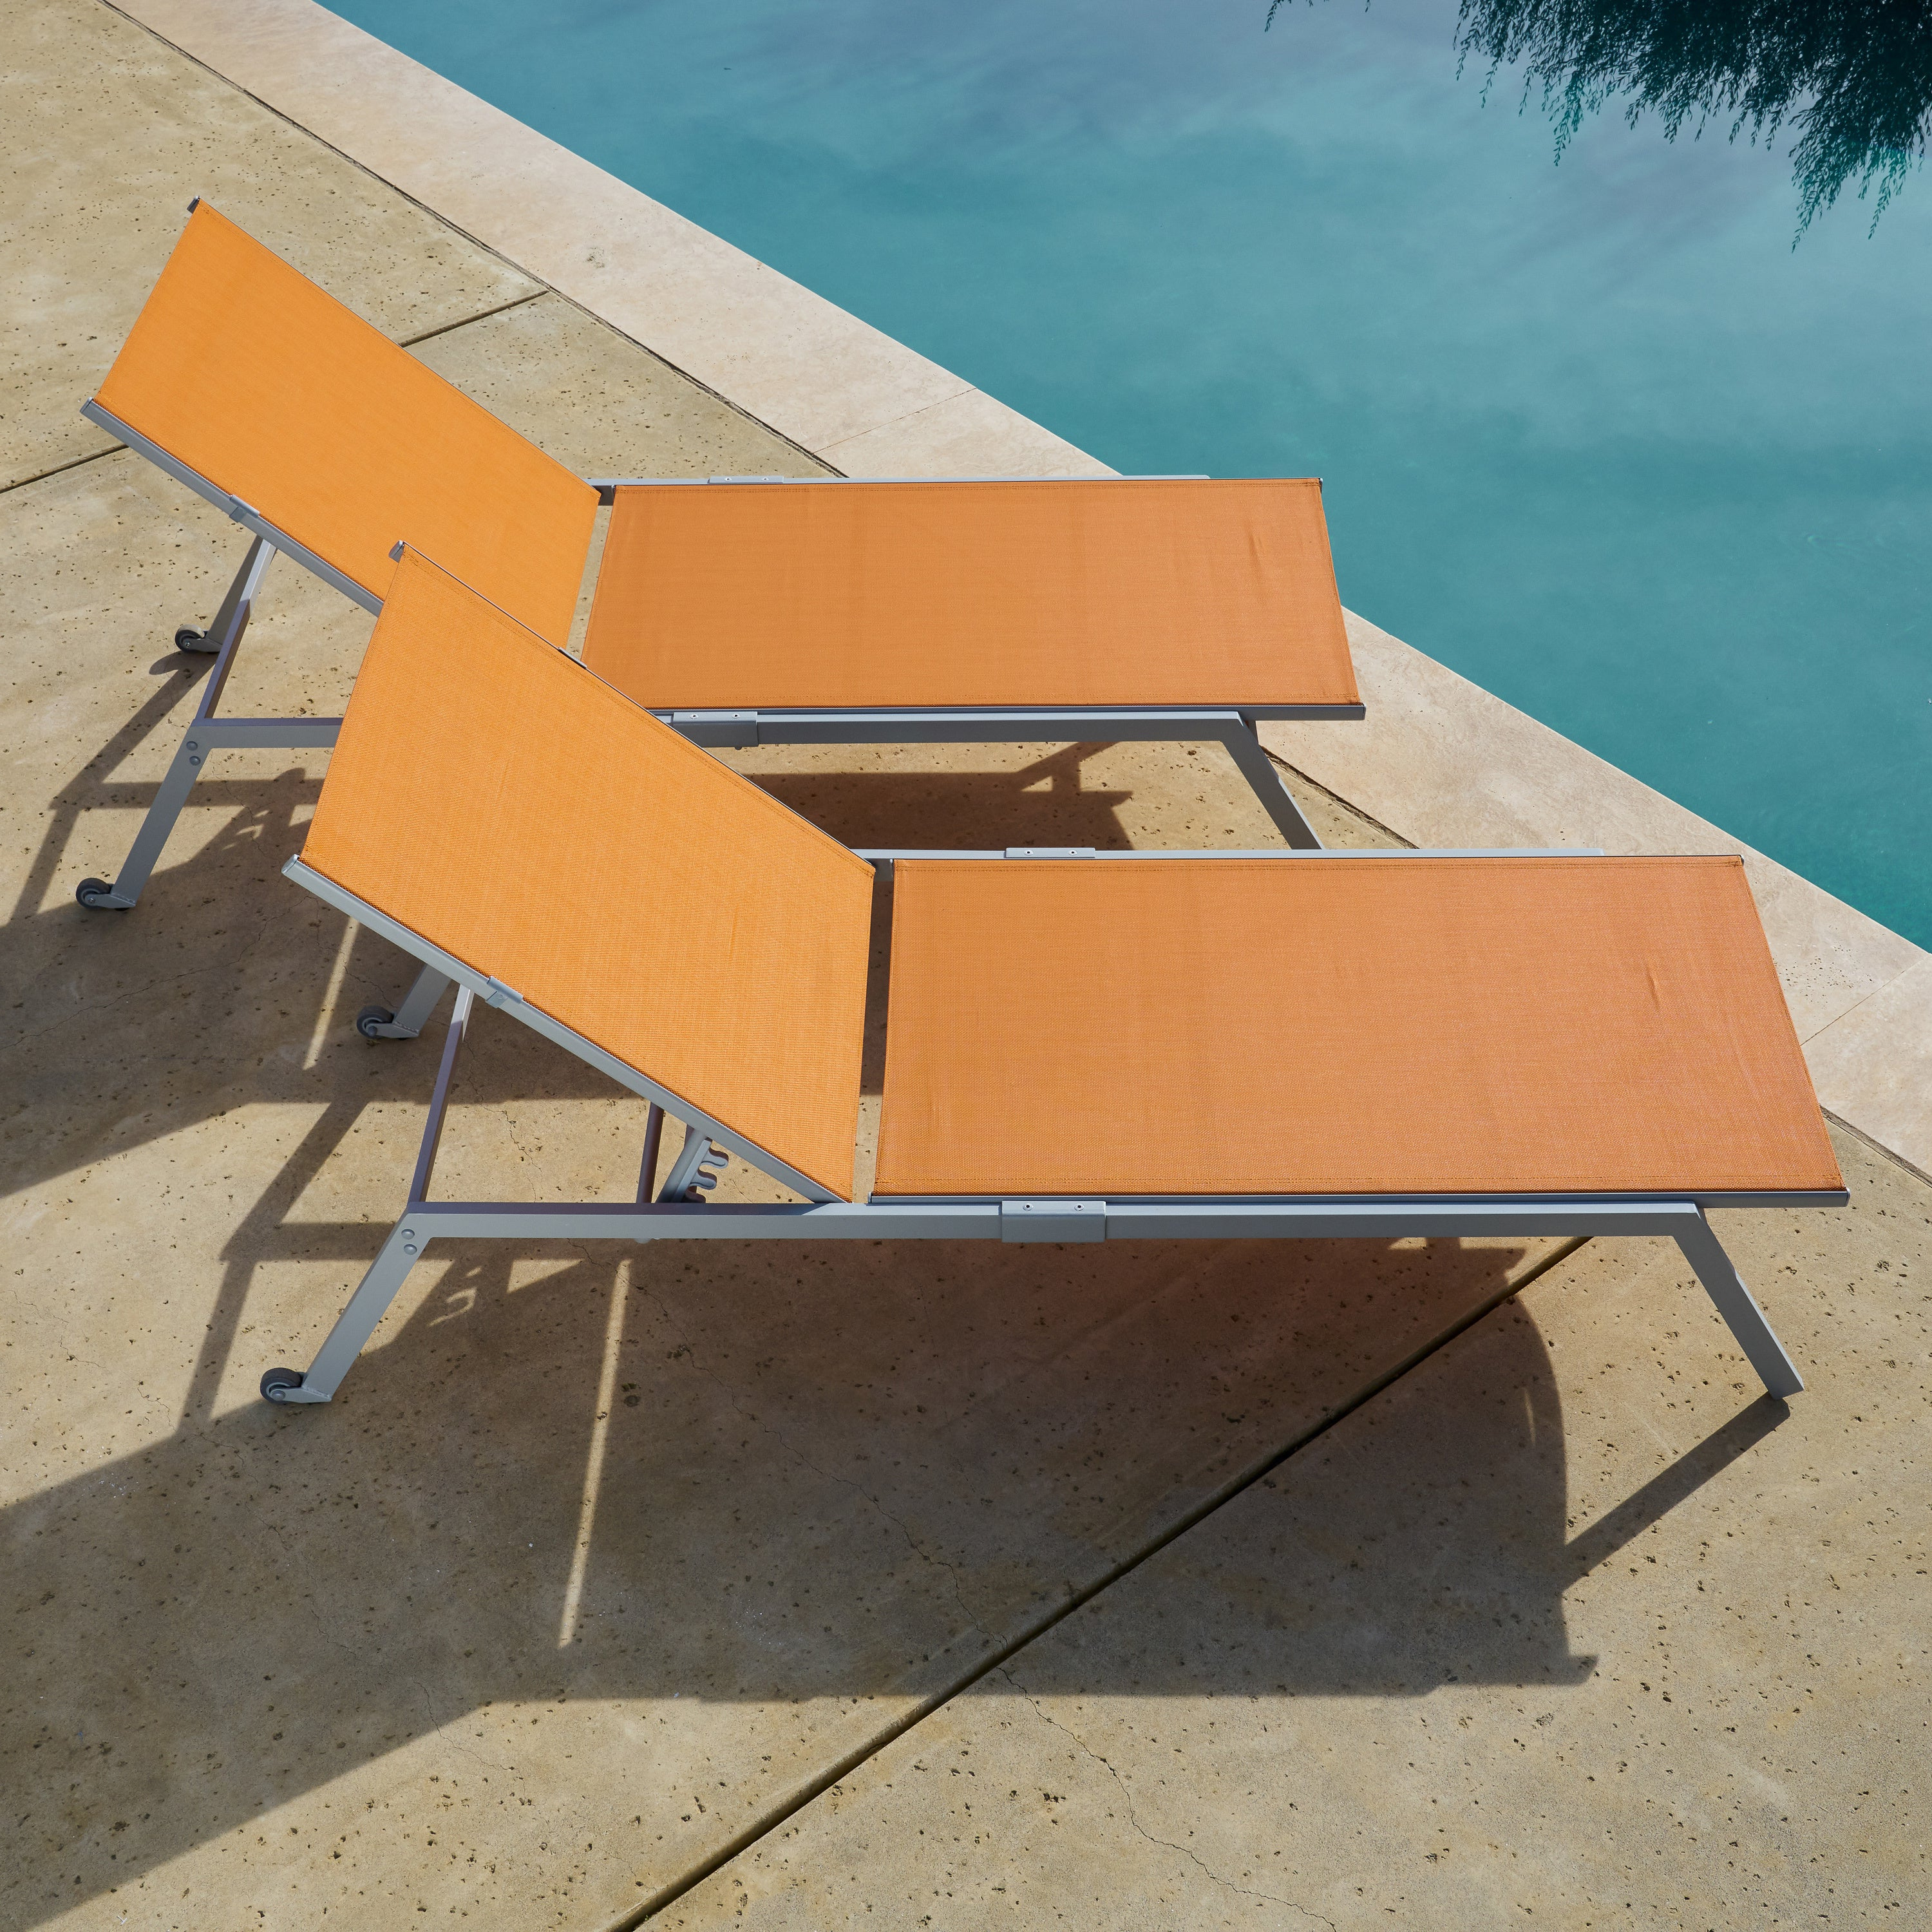 Adjustable Sling Fabric Patio Chaise Lounges Throughout Well Liked Corvus Torino Adjustable Sling Fabric Patio Chaise Lounge (View 10 of 25)